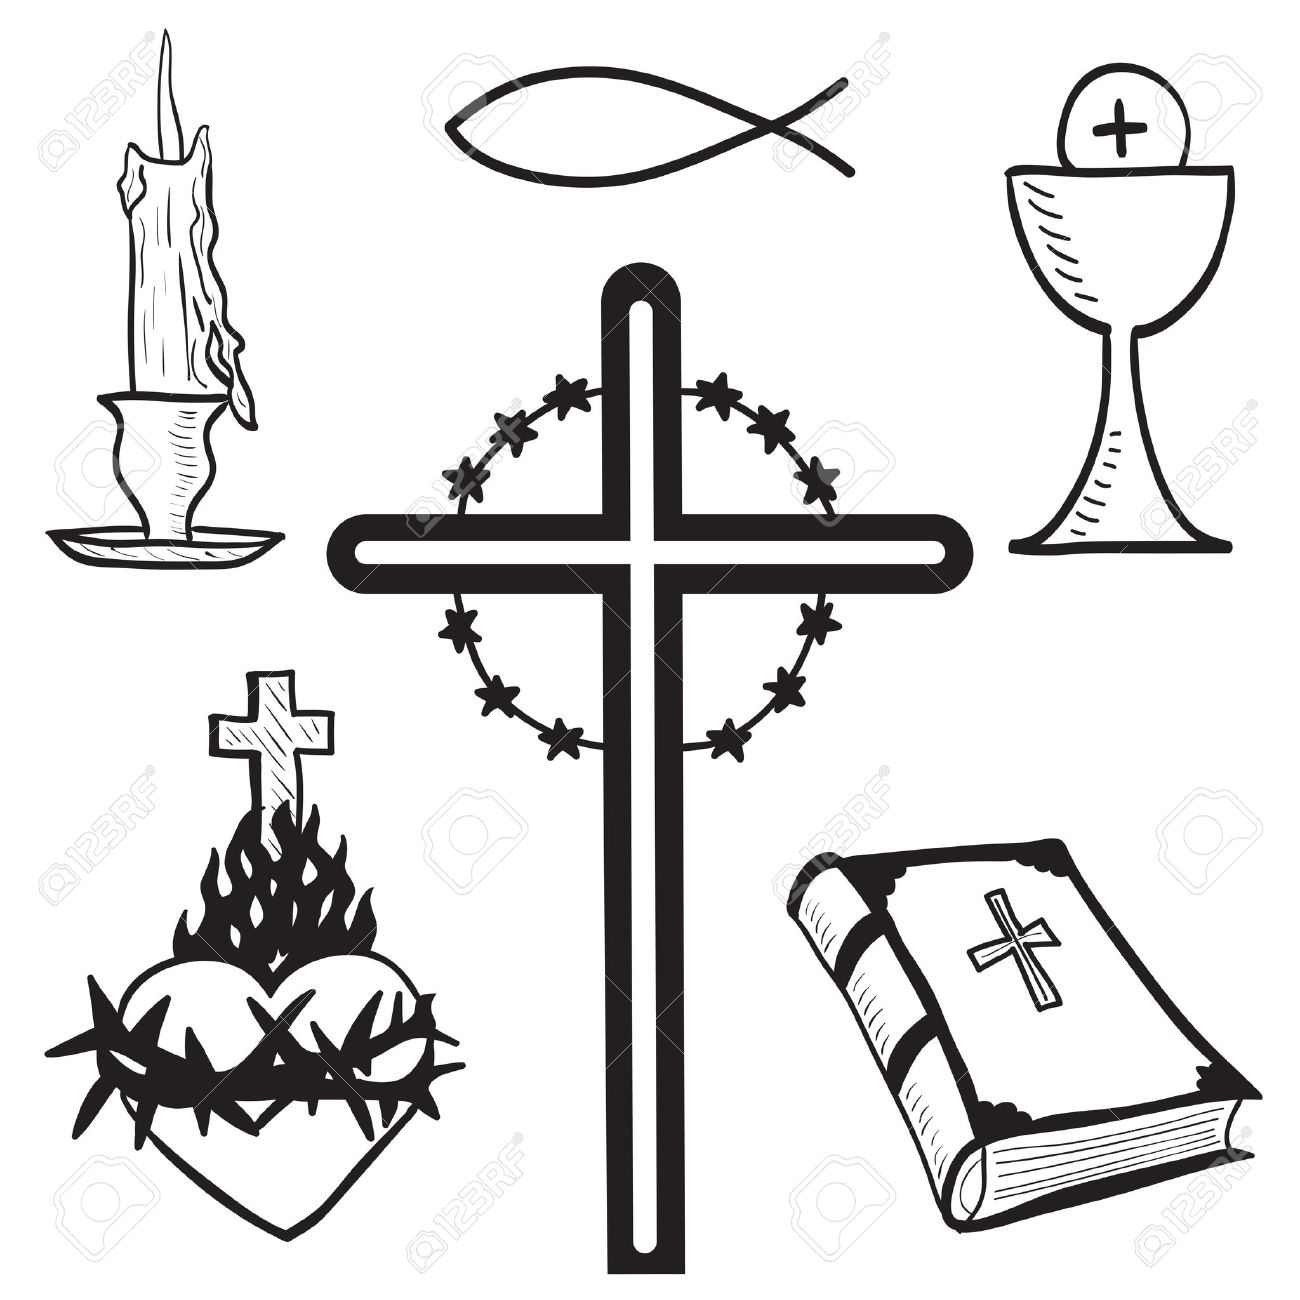 christian hand drawn symbols illustration candle cross bible rh 123rf com  christian symbols clipart